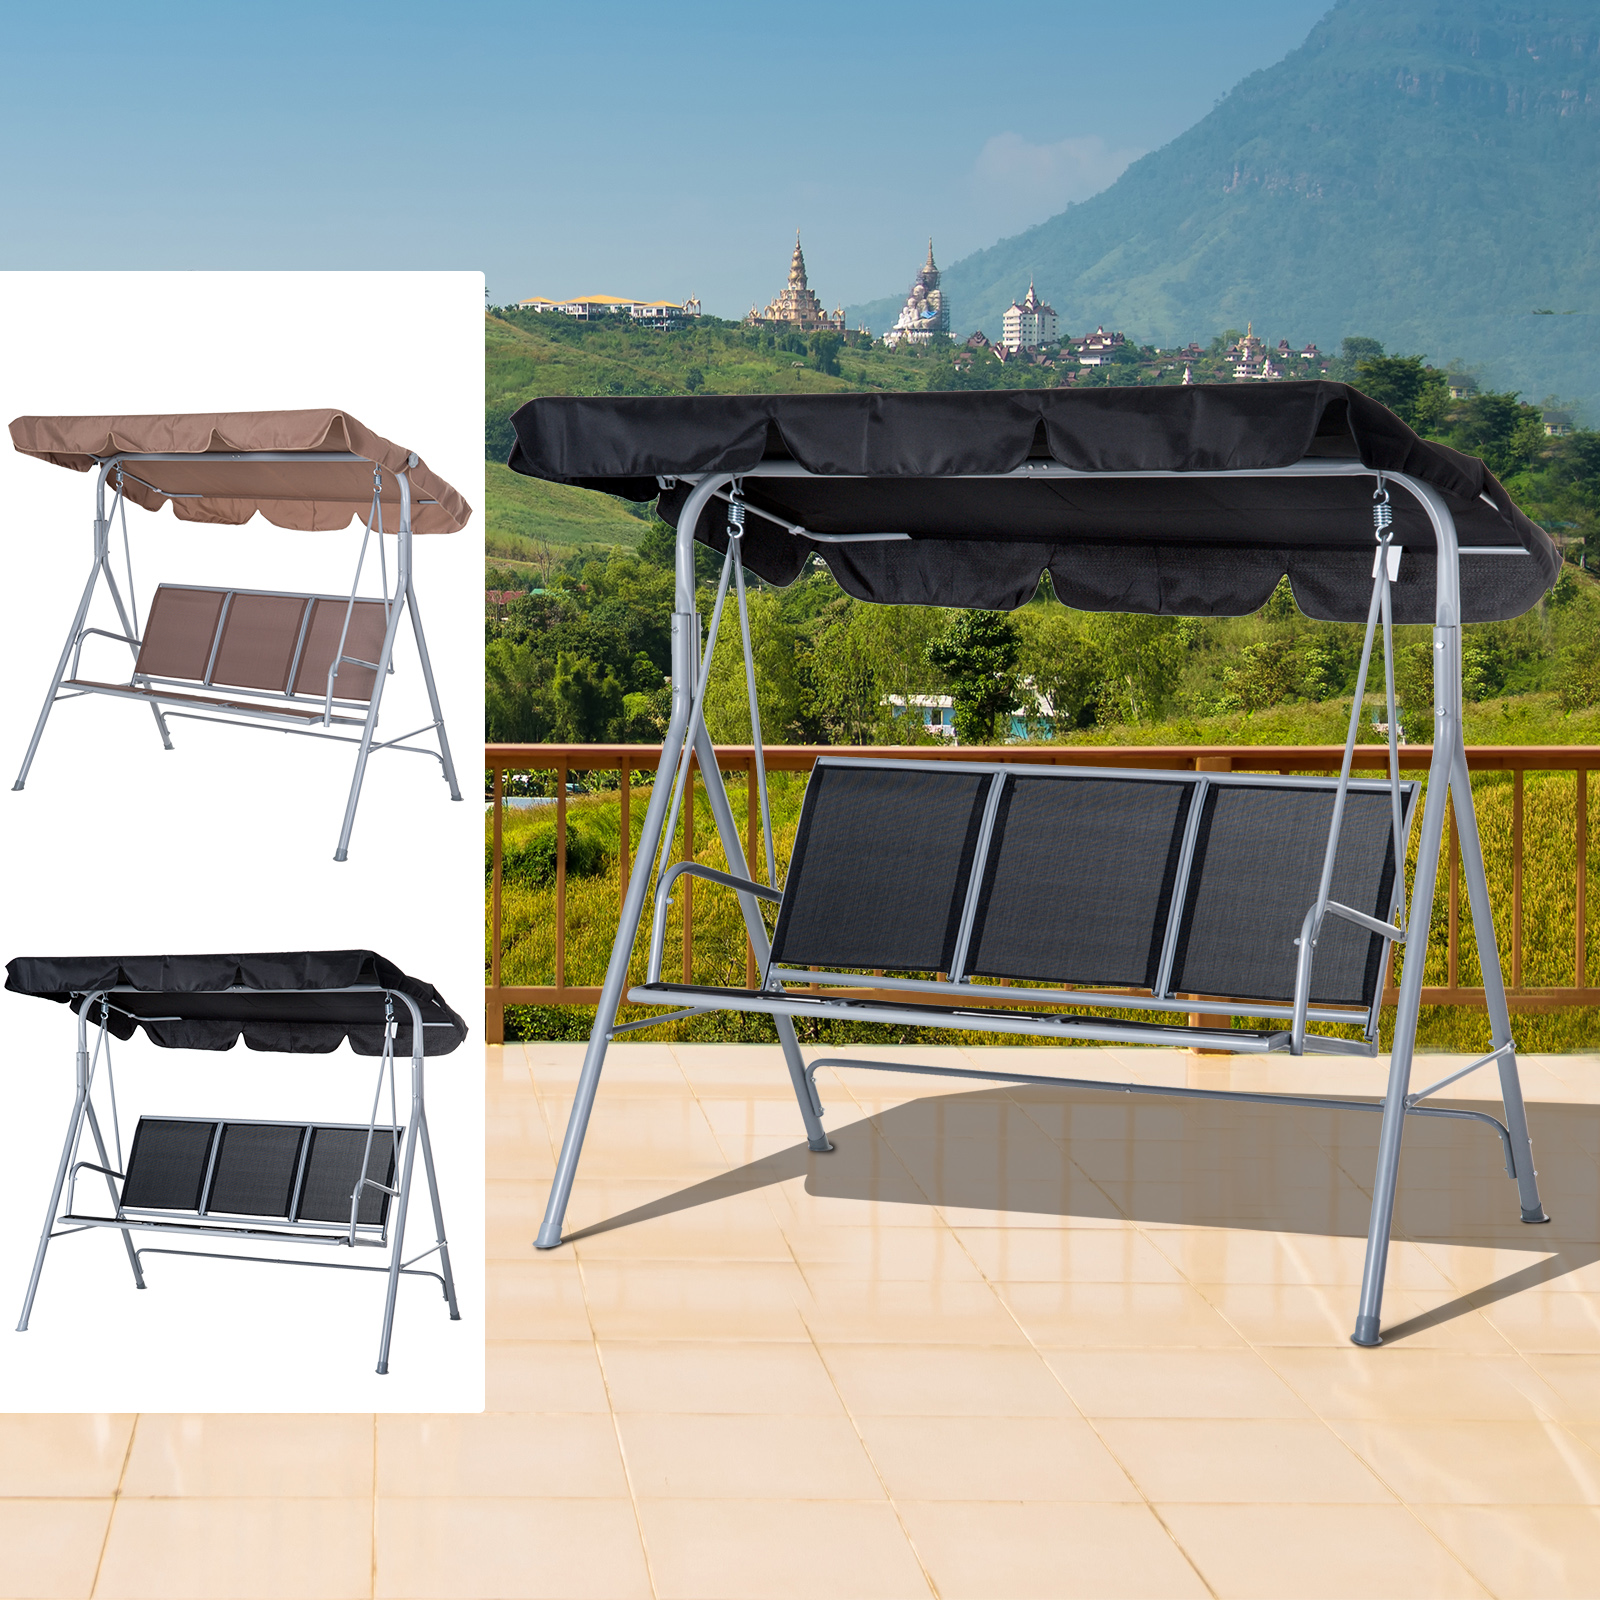 Sensational Details About Swing Chair Patio Hammock Garden Bench 3 Seater Rock Metal Pabps2019 Chair Design Images Pabps2019Com